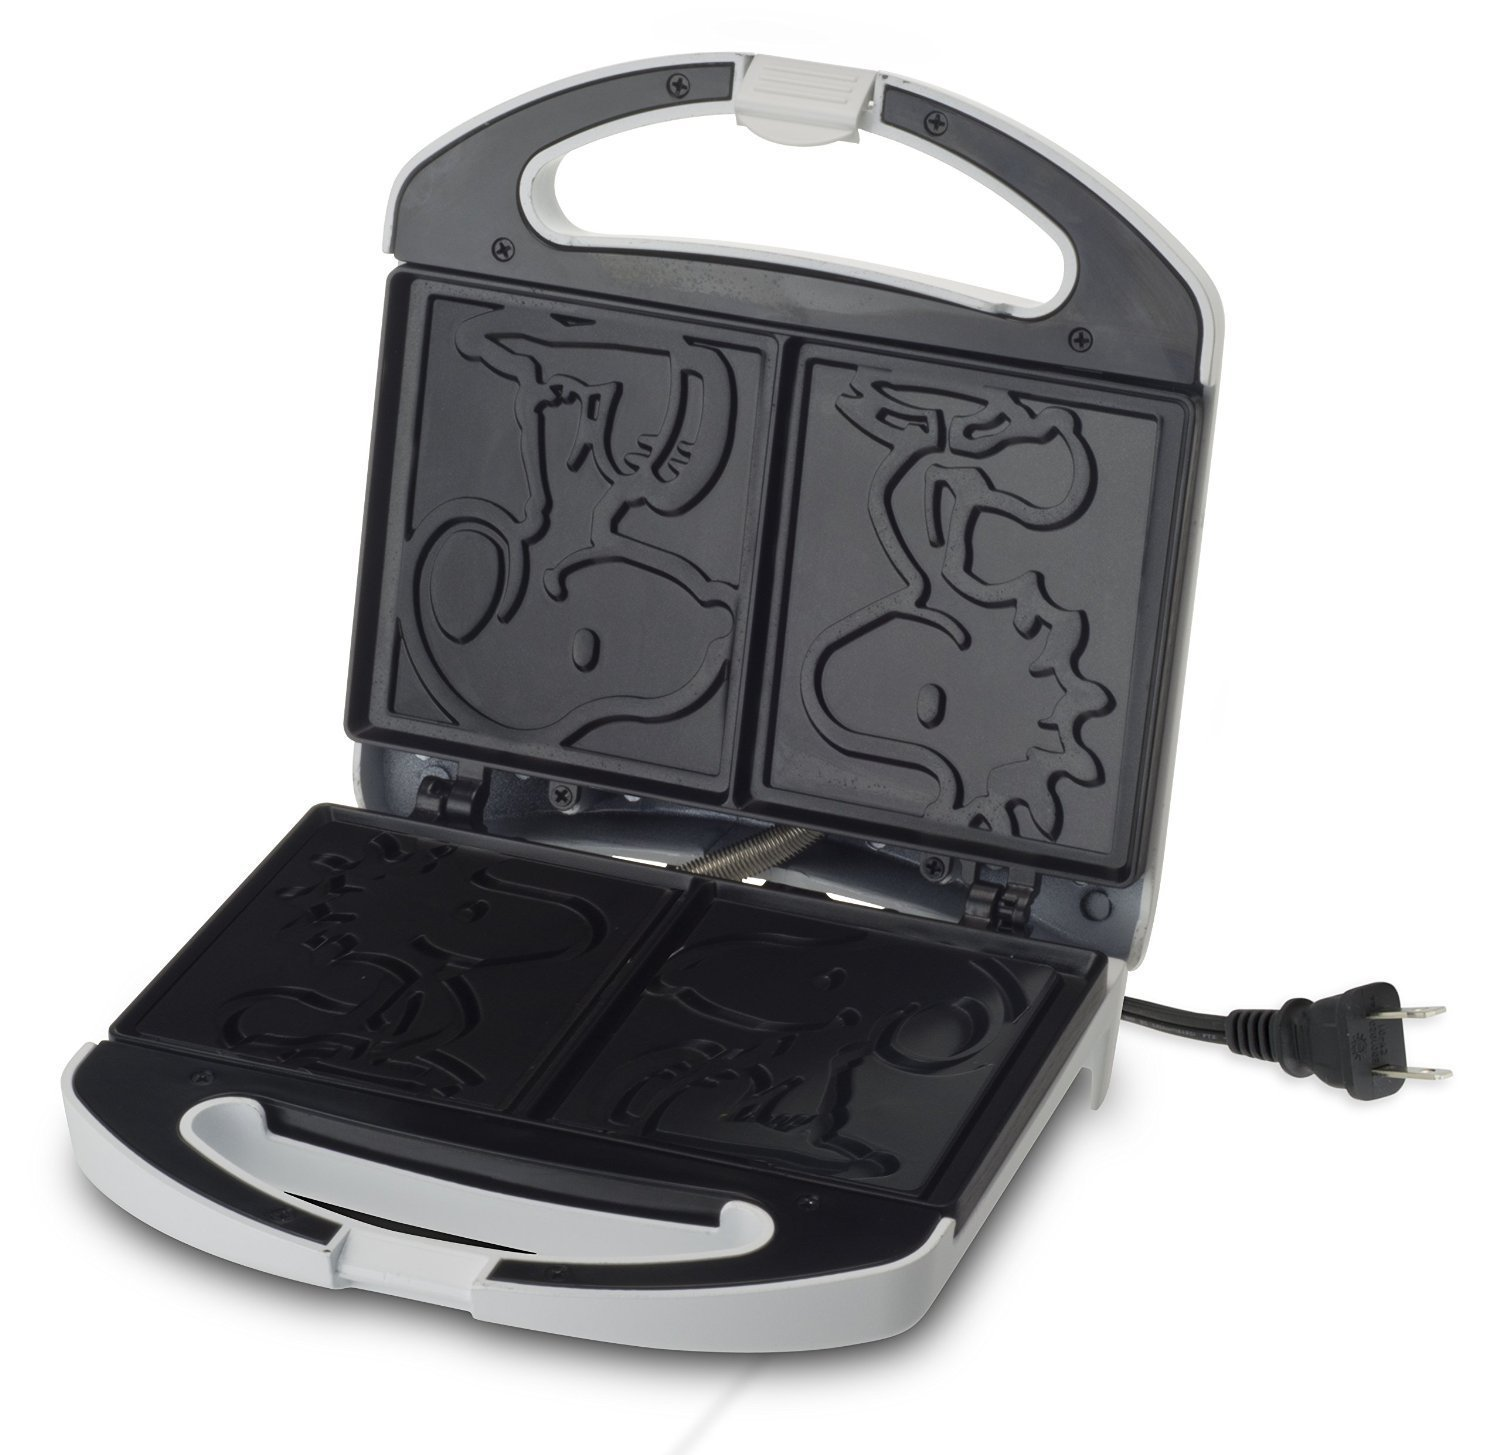 Smart Planet SGCM‐2 Peanuts Snoopy and Woodstock Grilled Cheese Sandwich Maker, White by Smart Planet (Image #3)